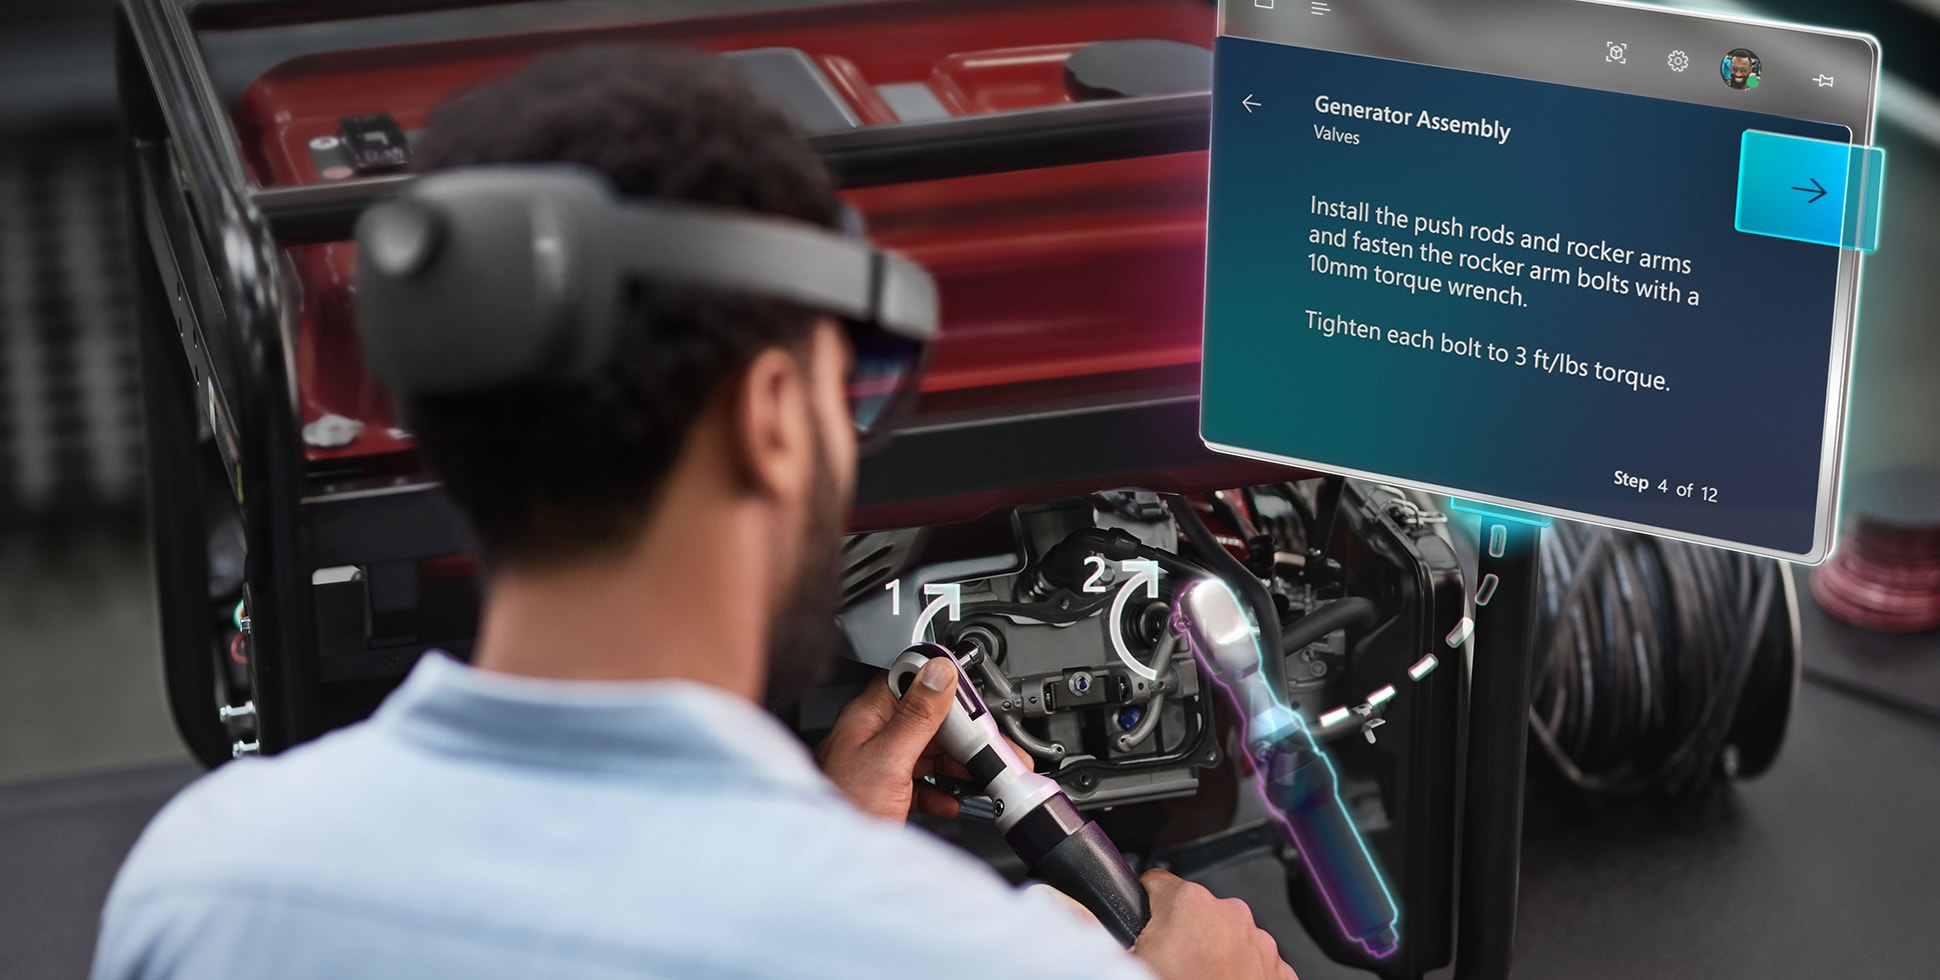 Microsoft Hololens 2 Brings AR to Industry